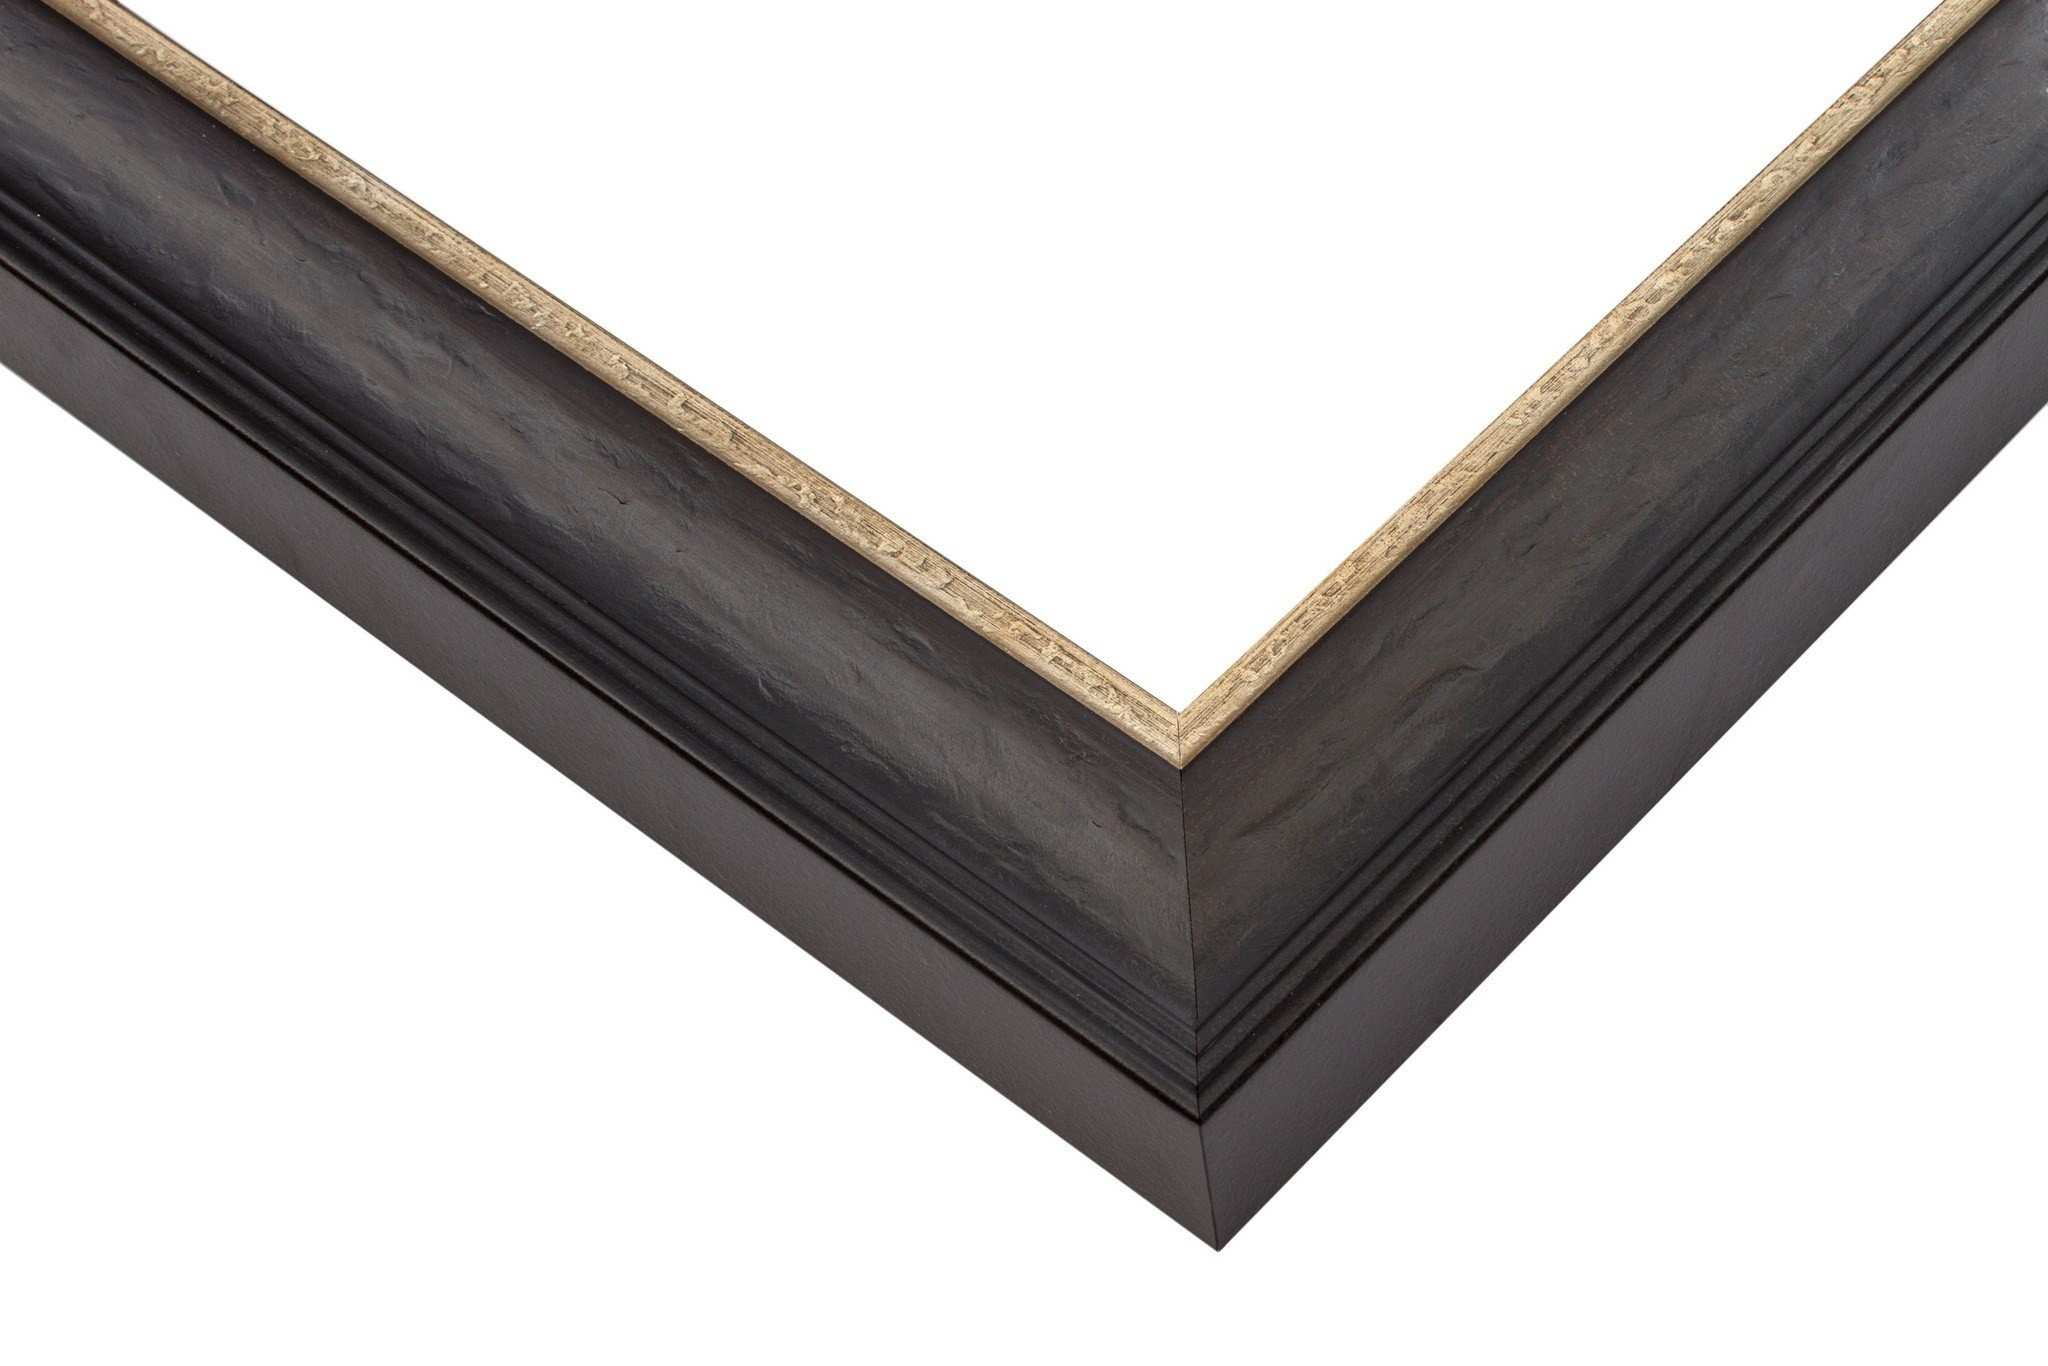 Charmant Distressed Picture Frames Wholesale Ideen